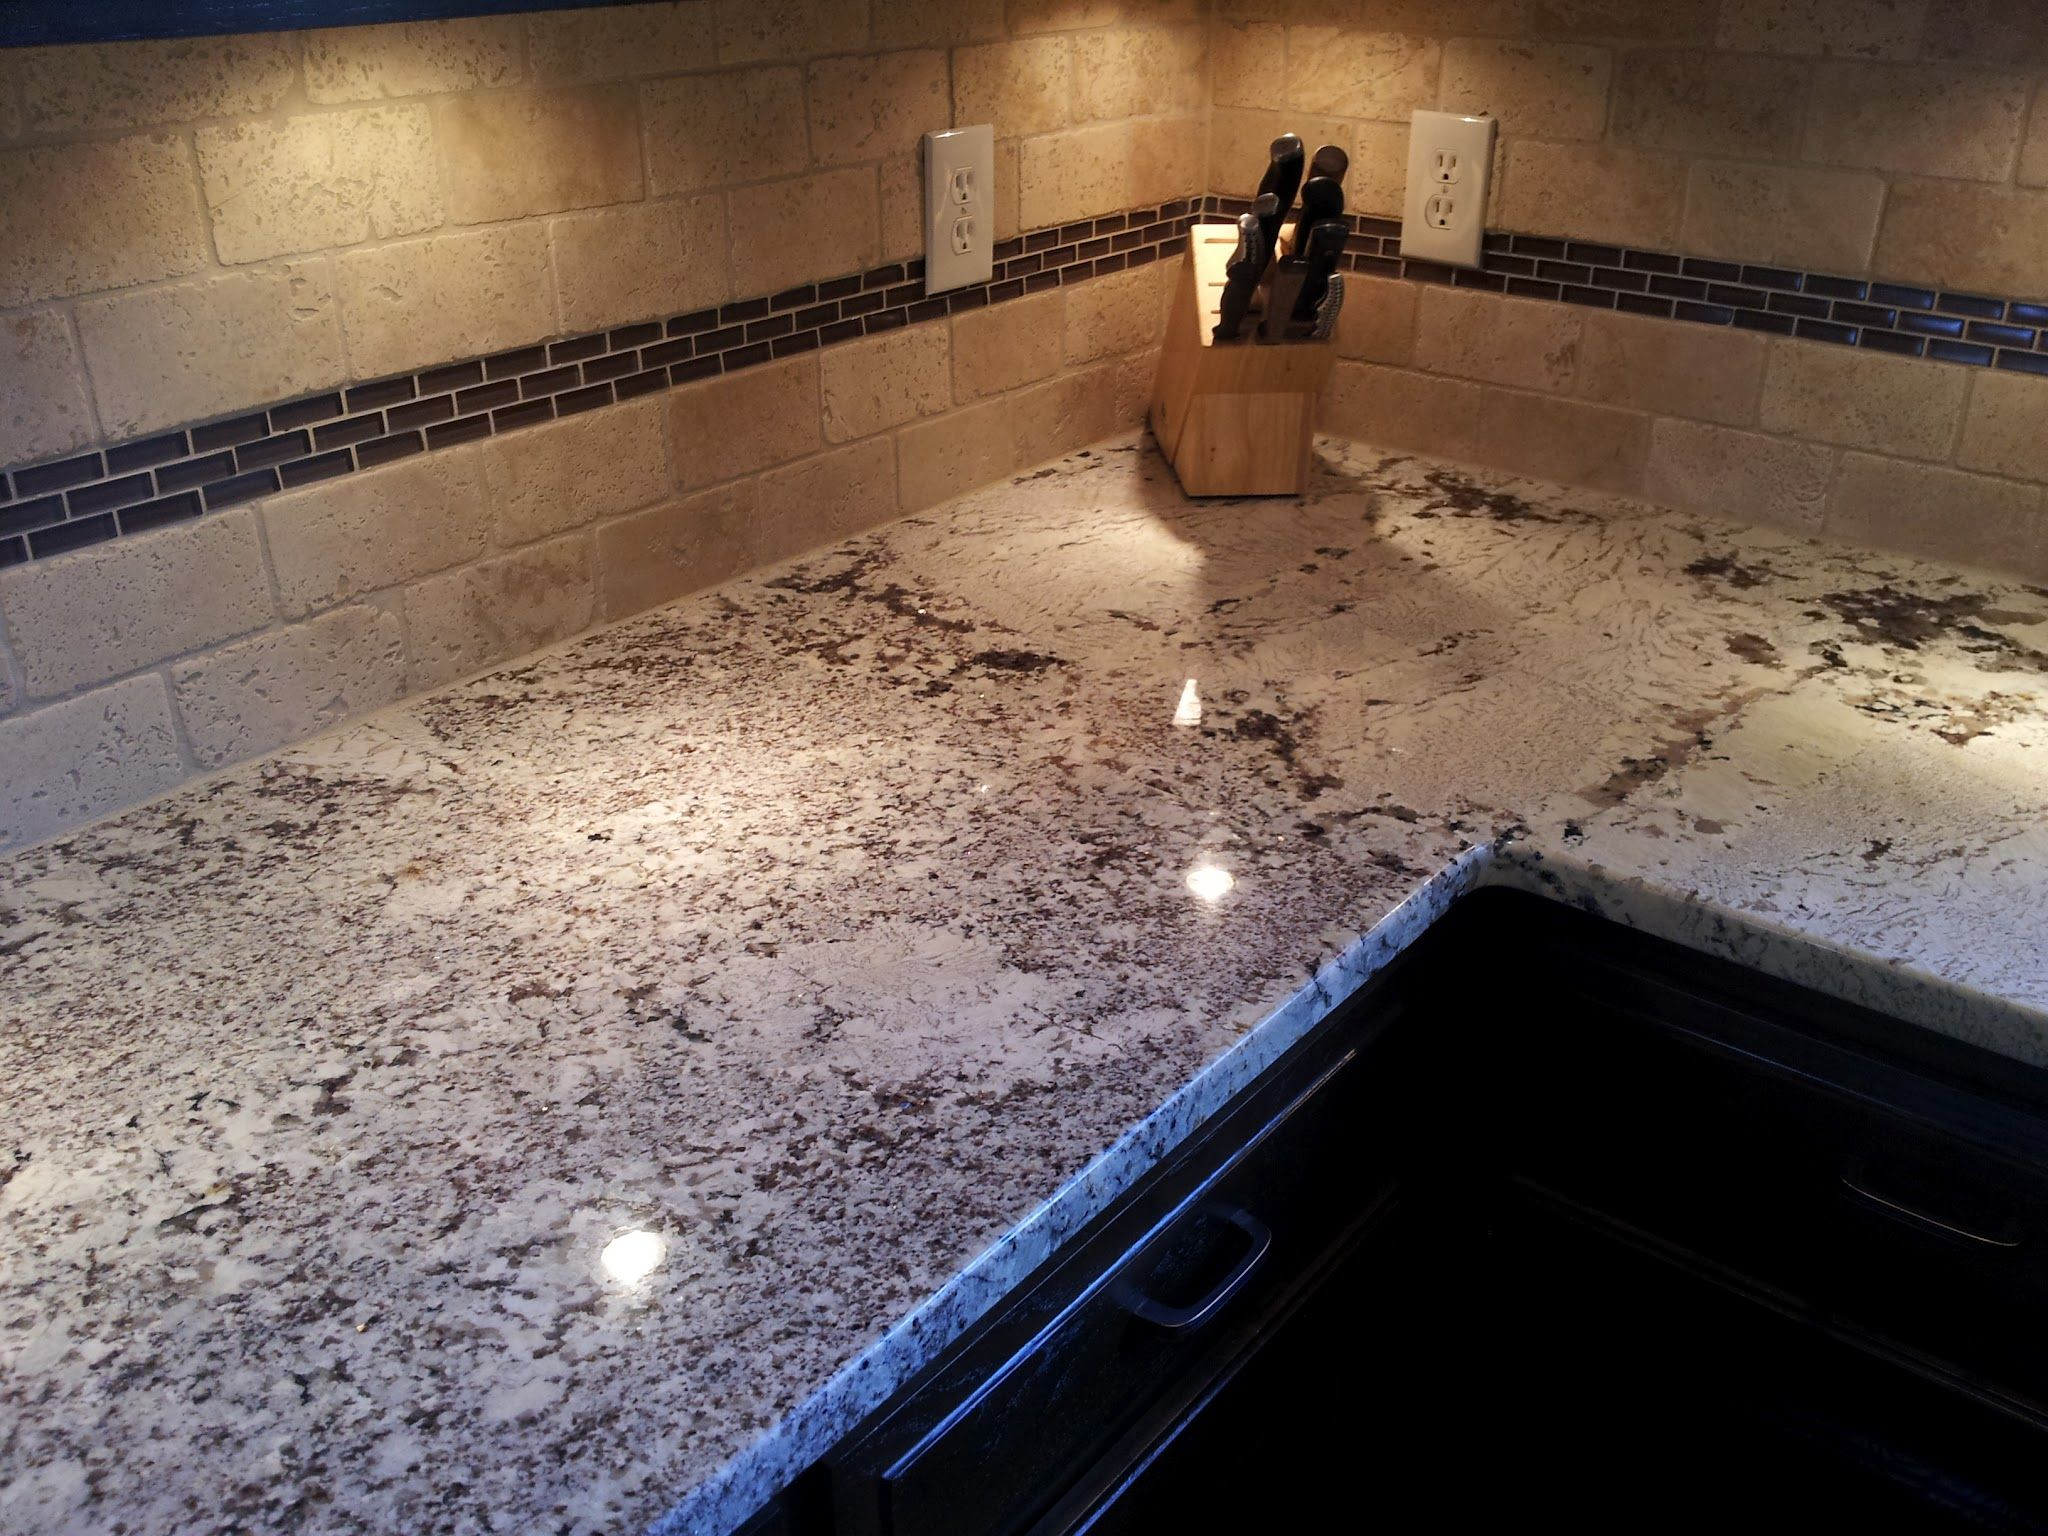 Carmelstoneimports | Kitchen | Pinterest | Granite, Granite stone ...